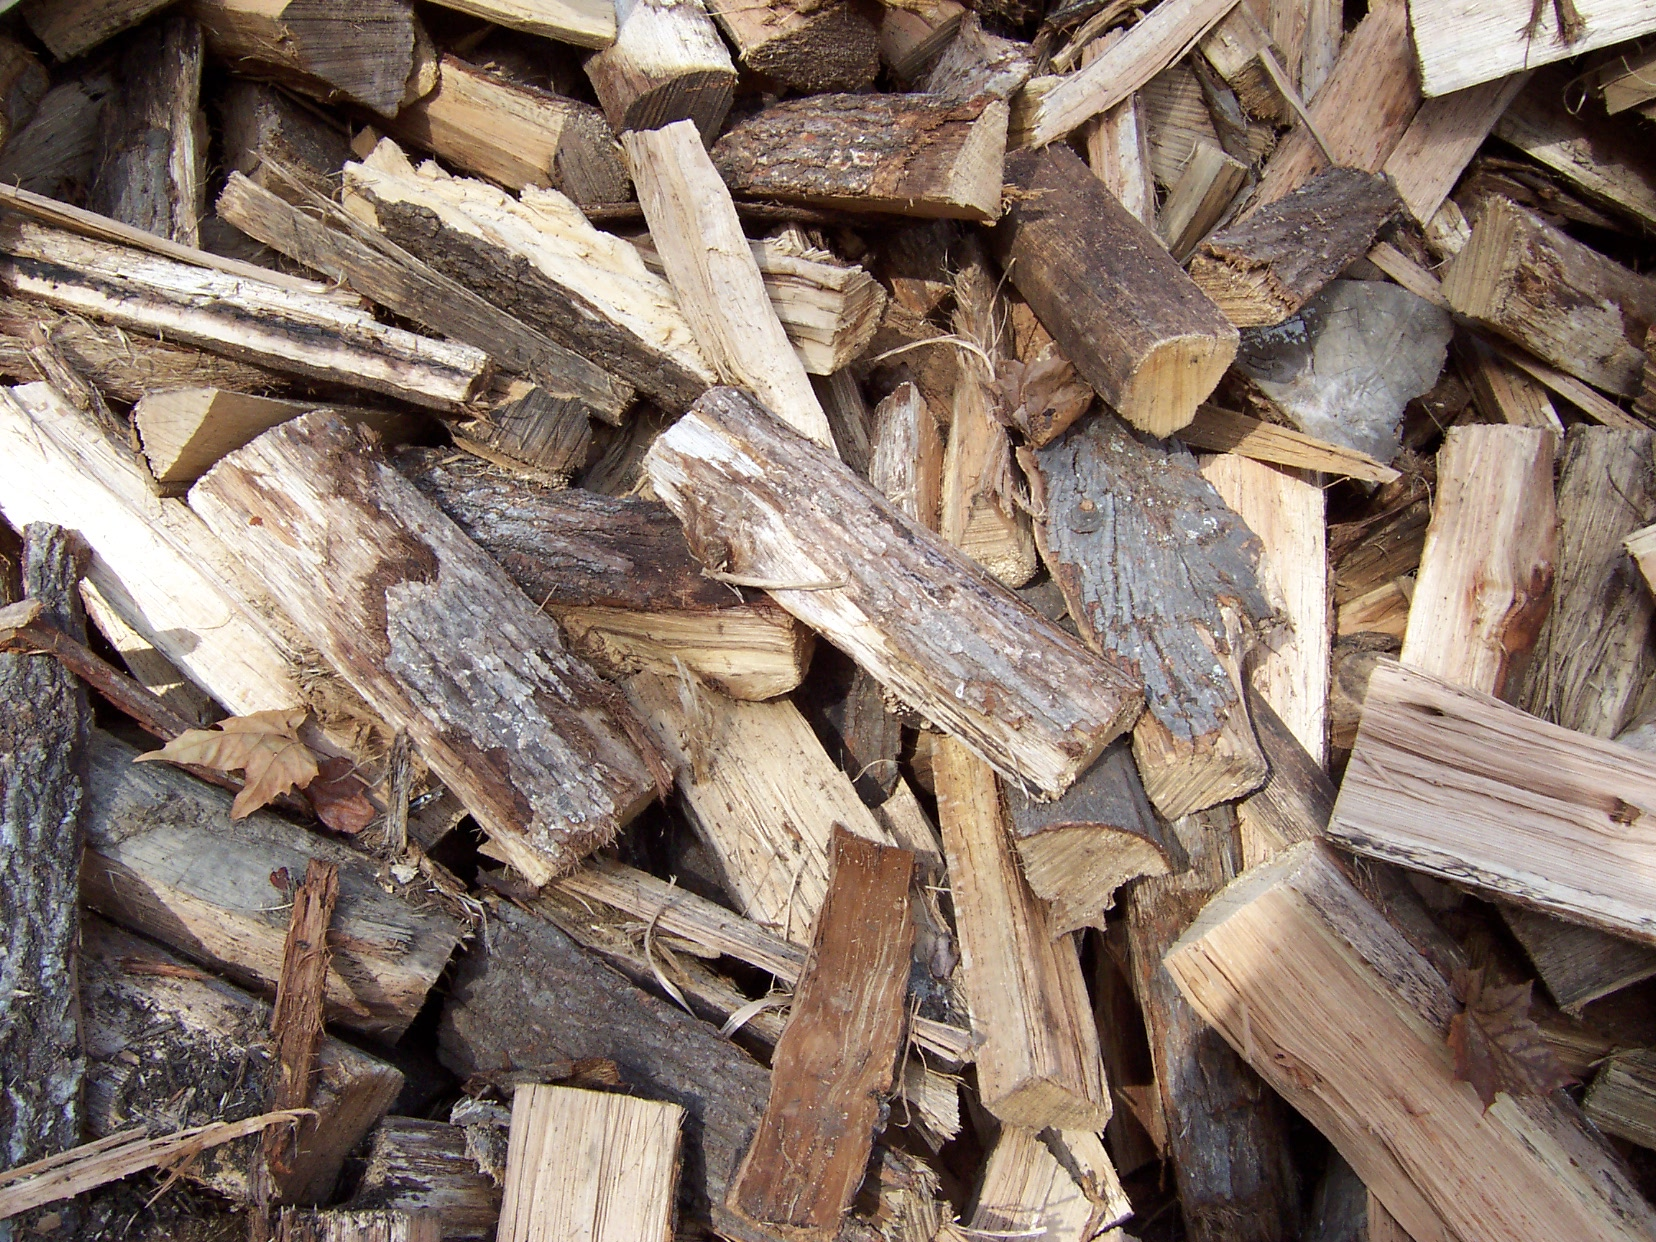 OAK FIREWOOD FOR SALE